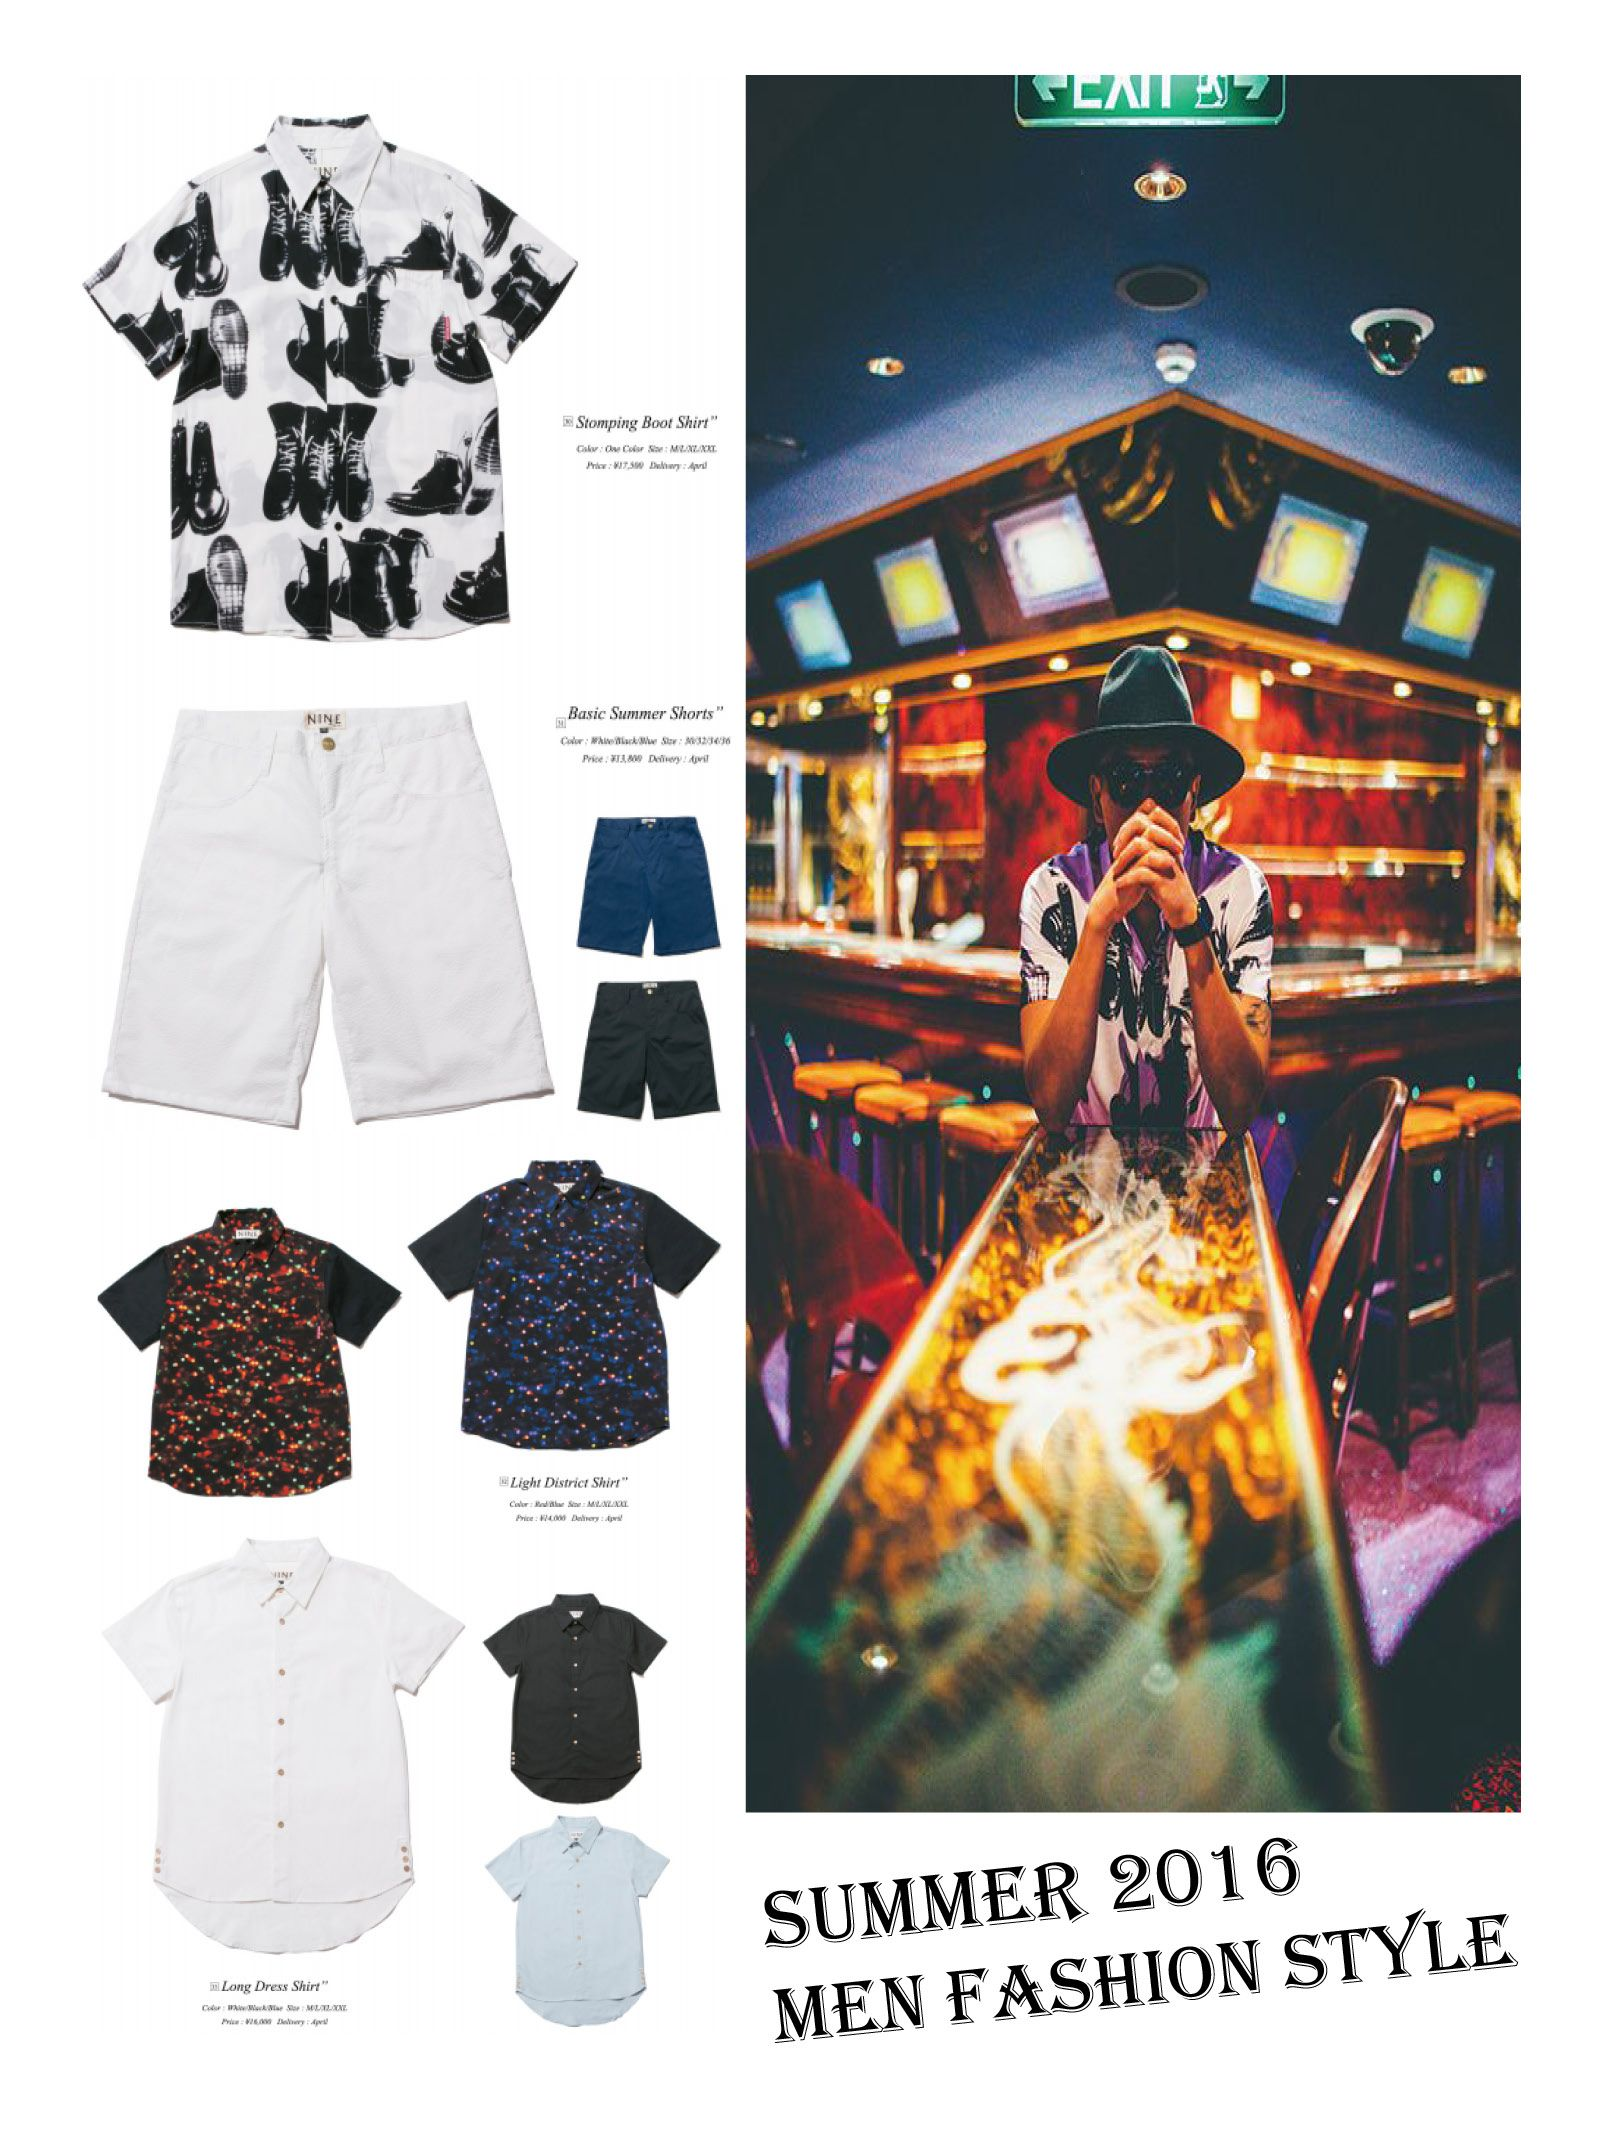 Summer 2016 Men Fashion Style. BY Nine Rulaz Japan.  #MenStyle #Fashion #Summer2016 #ArtInspired #Outfits #NineRulaz #Zerone